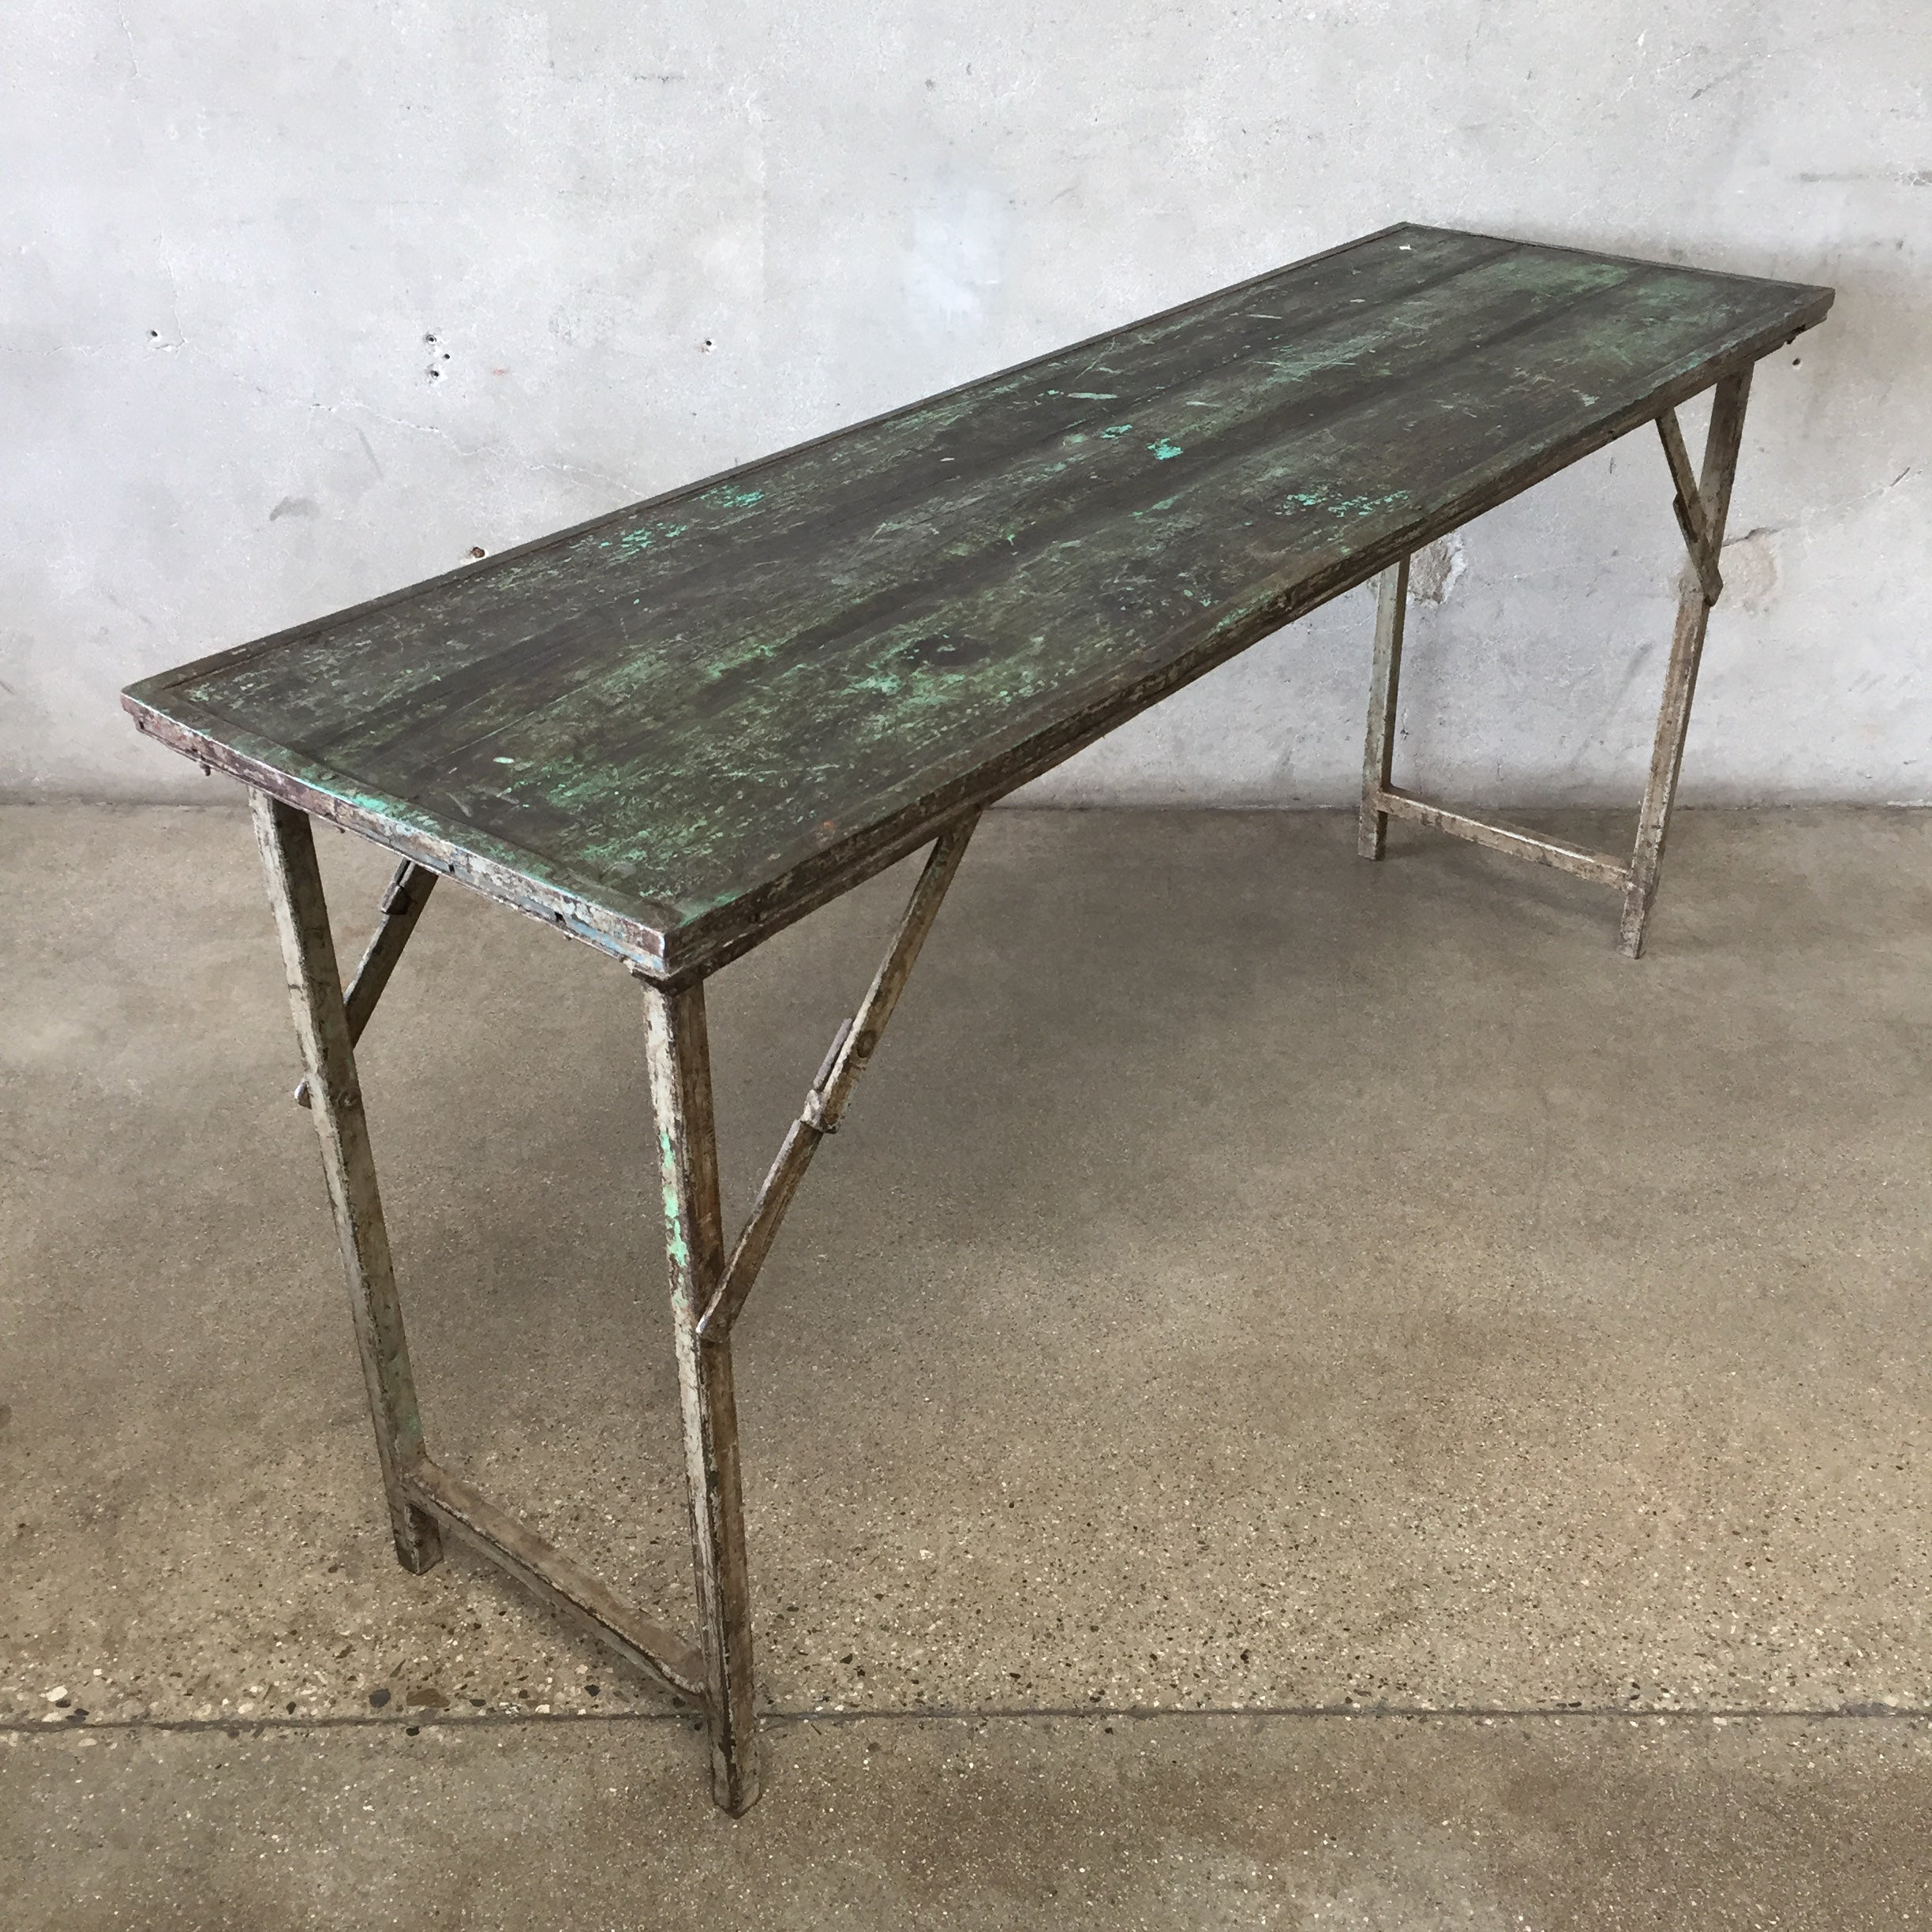 table styles materials wheels folding practical furniture ruchi wooden easy designs with of legs astonishing design brown color added ideas at wood for the